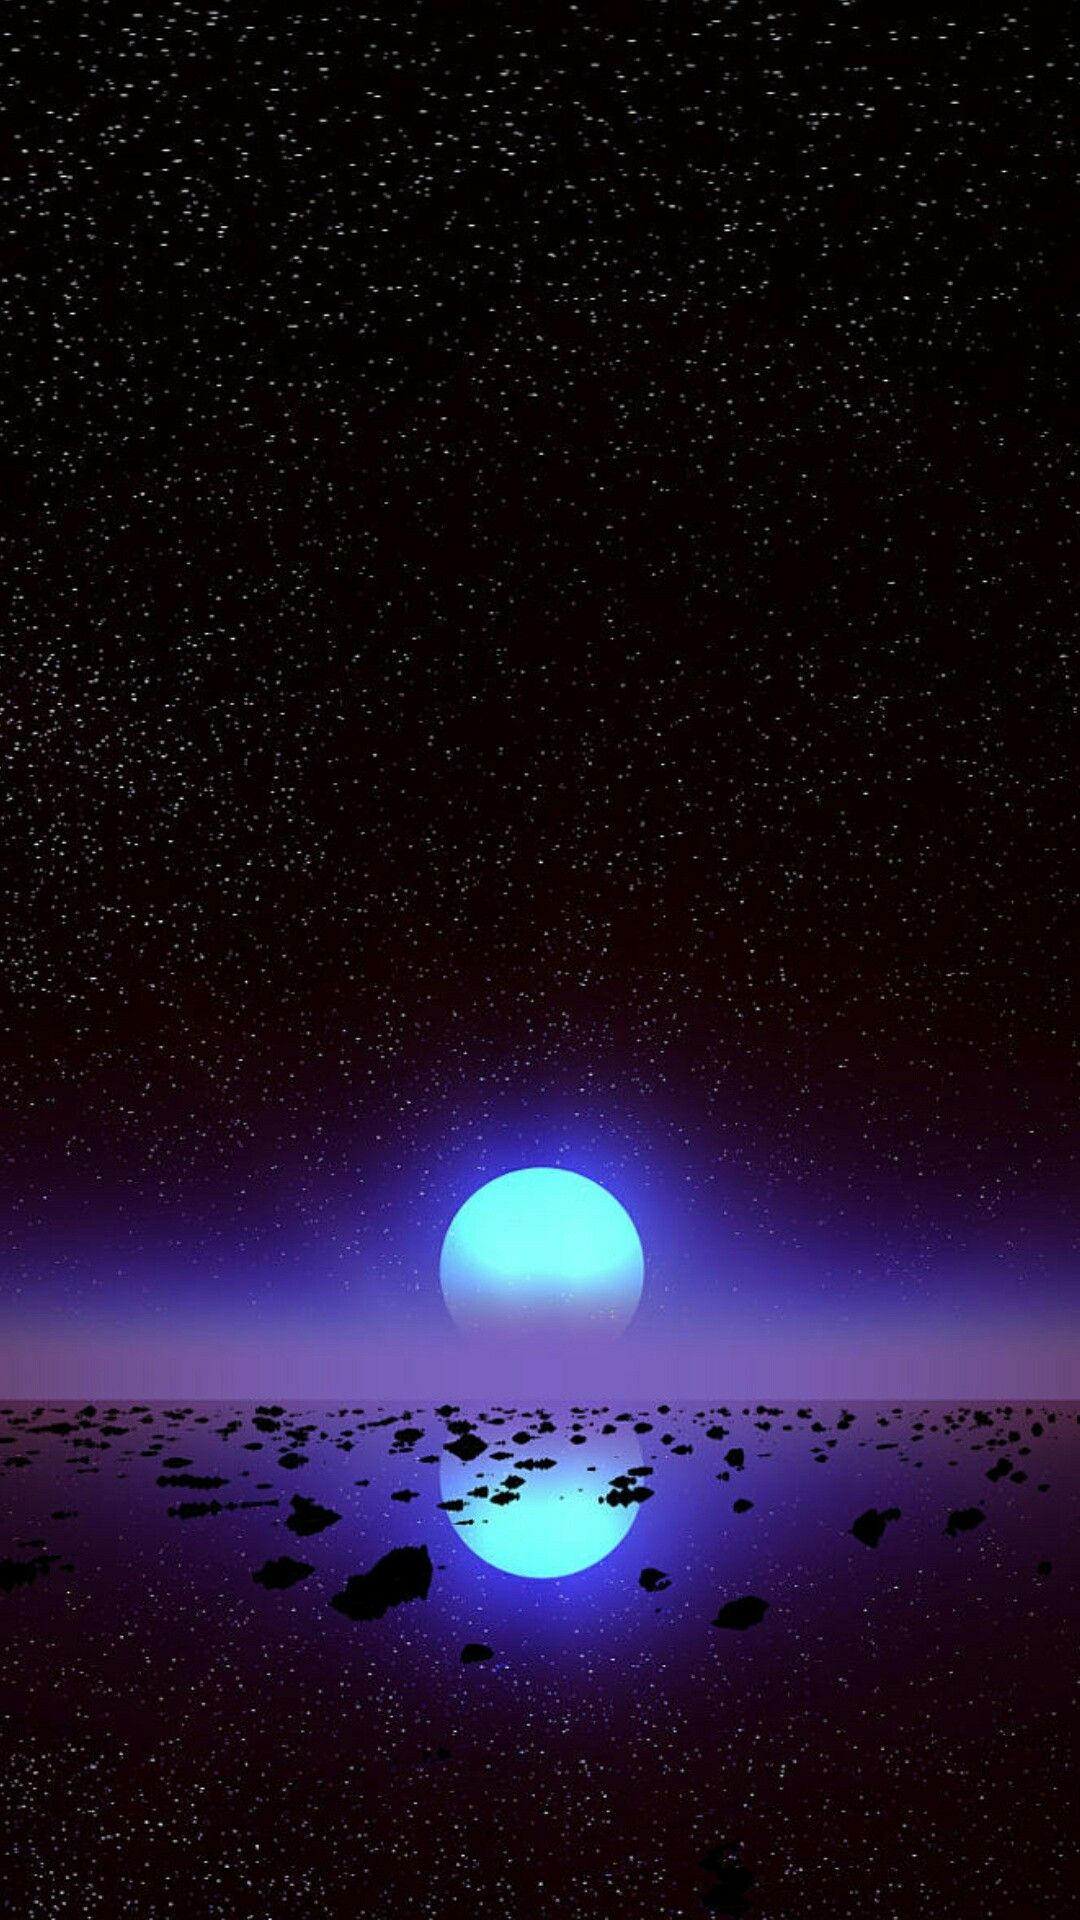 Glowing planet space wallpaper alien space and steam - Space moon wallpaper ...